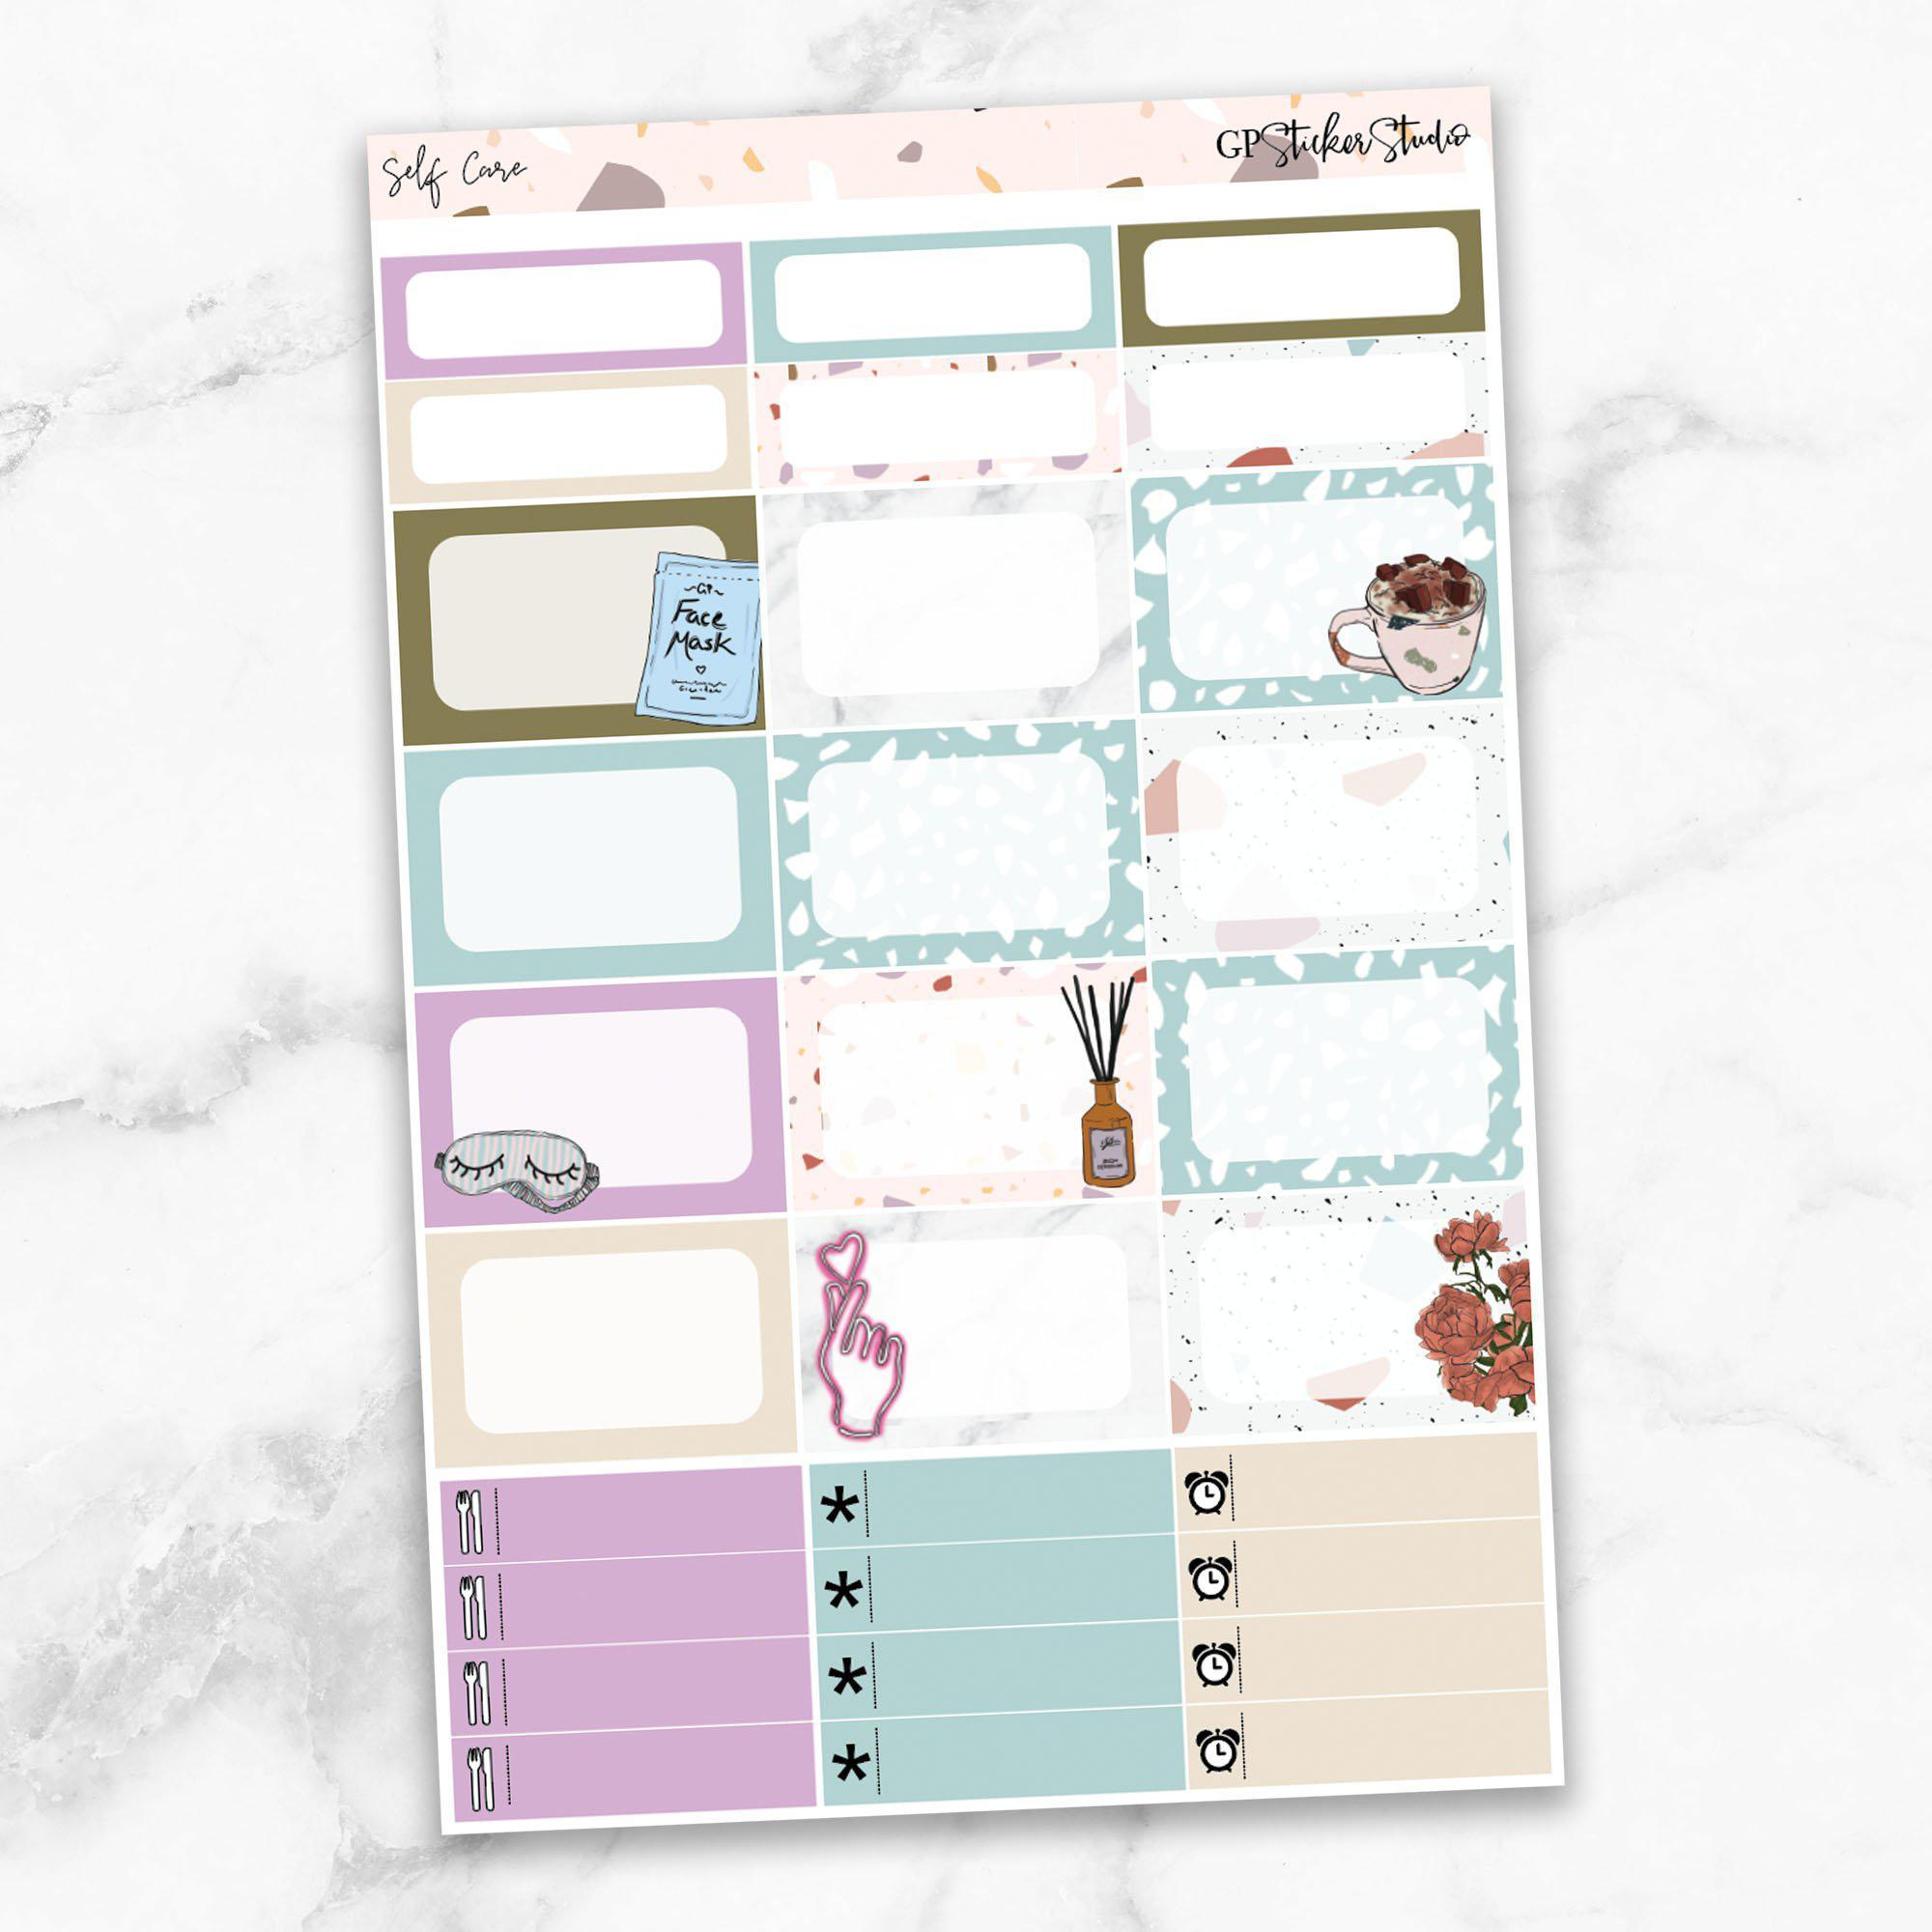 SELF CARE Half Boxes Planner Stickers-The GP Studio